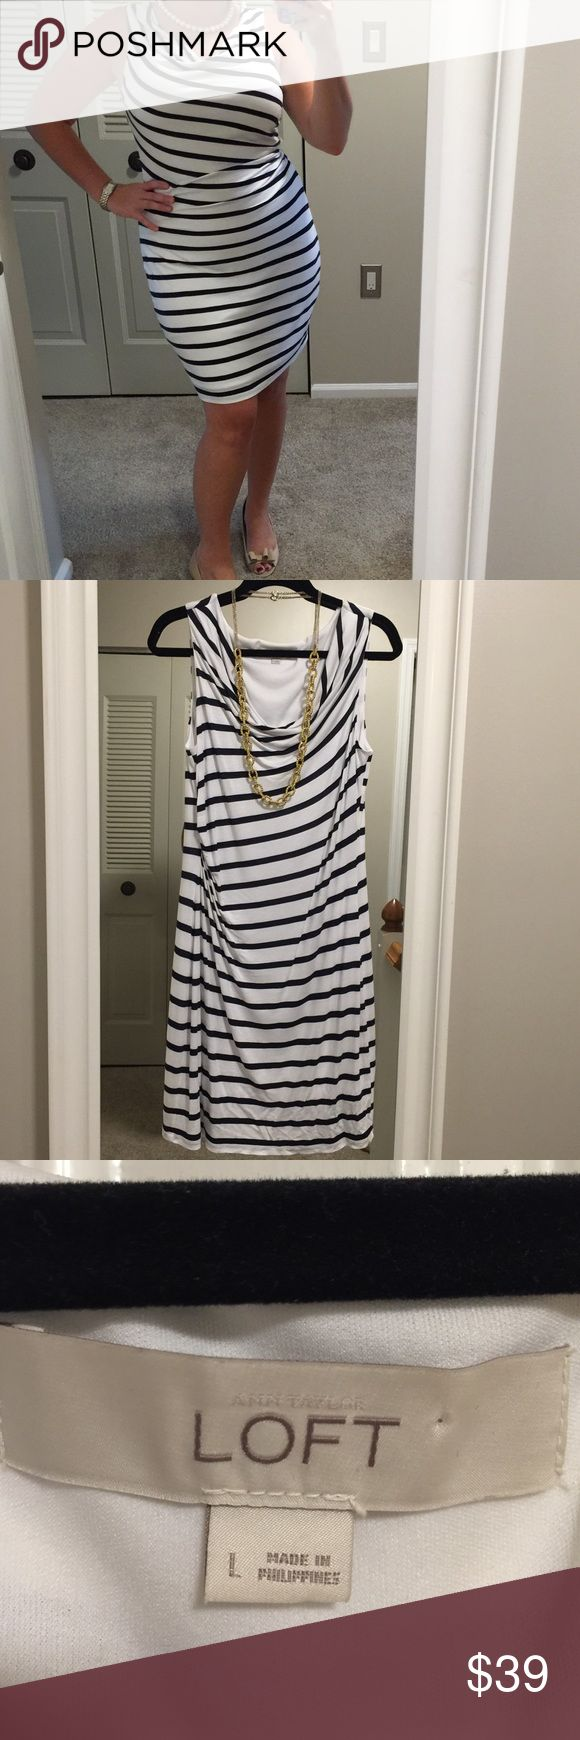 Loft Navy Stripe Dress Loft Navy Stripe Dress - size large. Fully lined, super comfortable and flattering to all figures. LOFT Dresses Midi